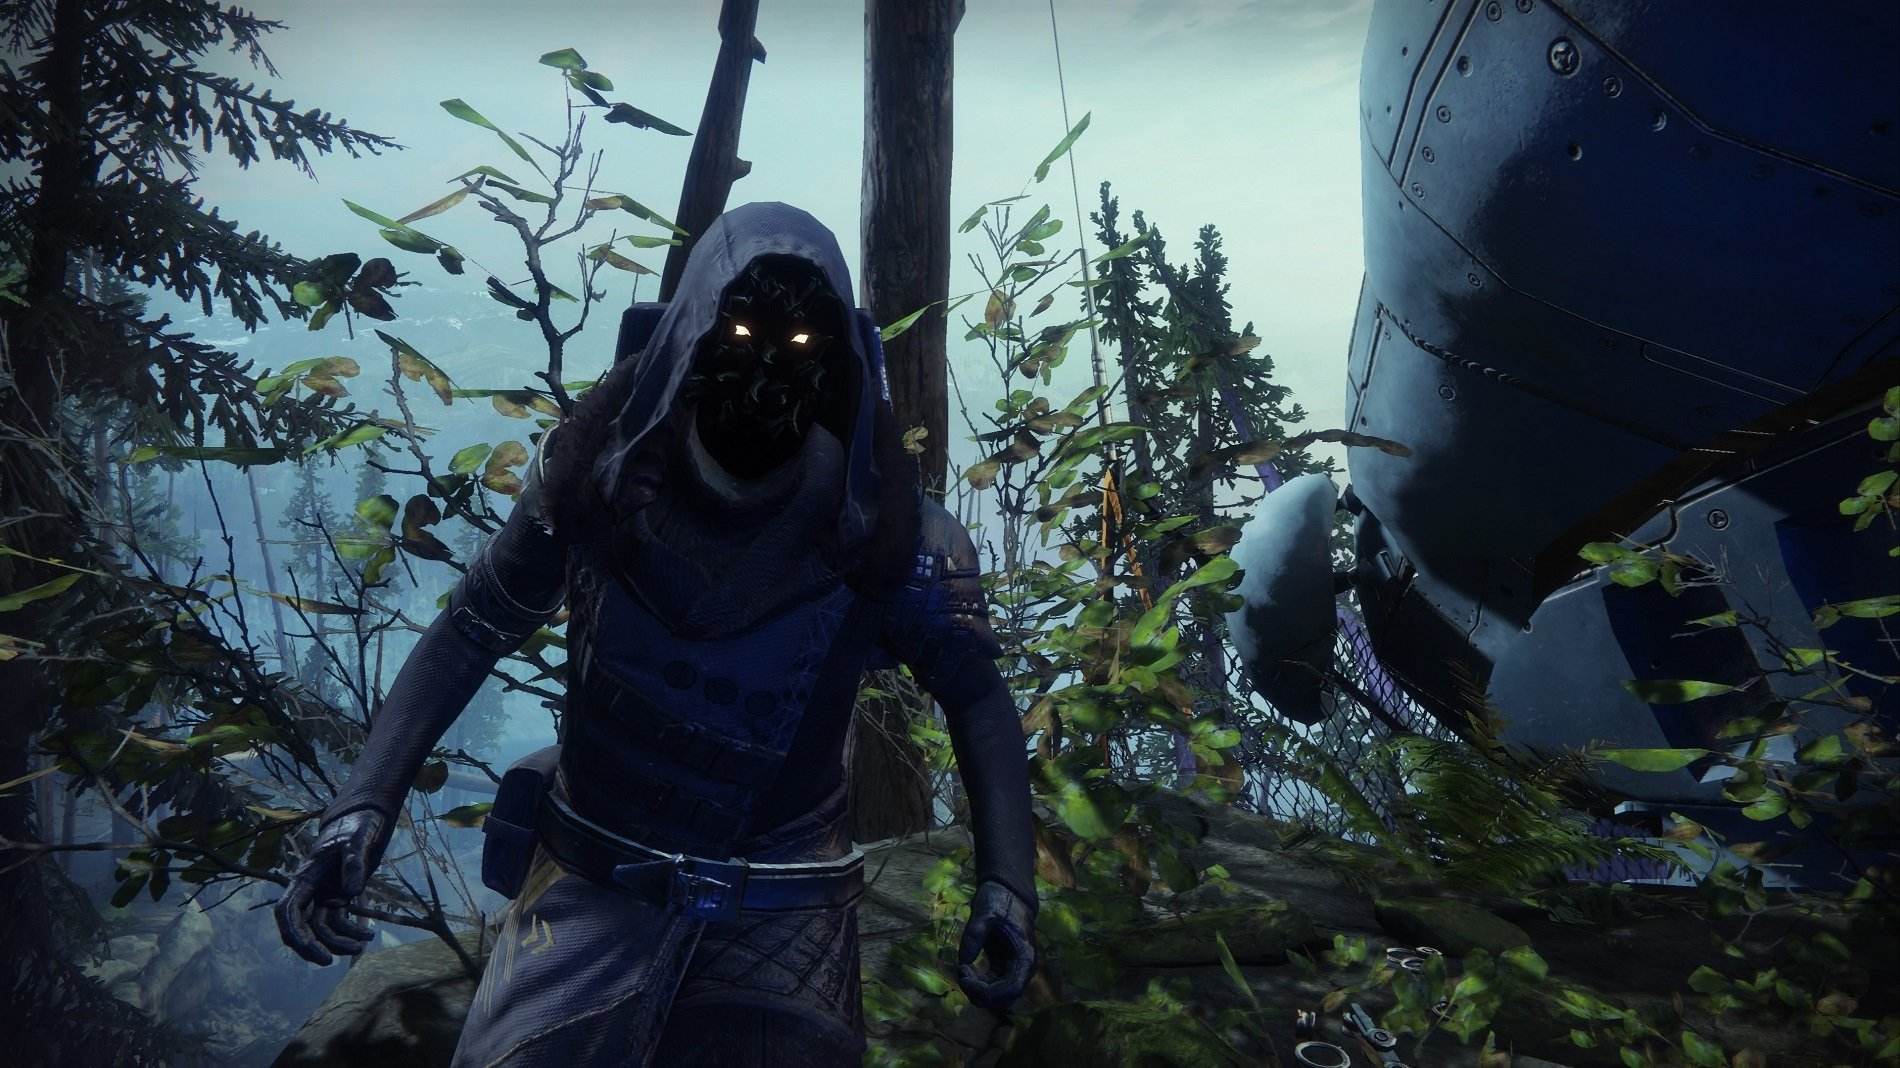 During the week of September 20 through September 24, Xur can be found in the Winding Cove area of the EDZ on Earth in Destiny 2.